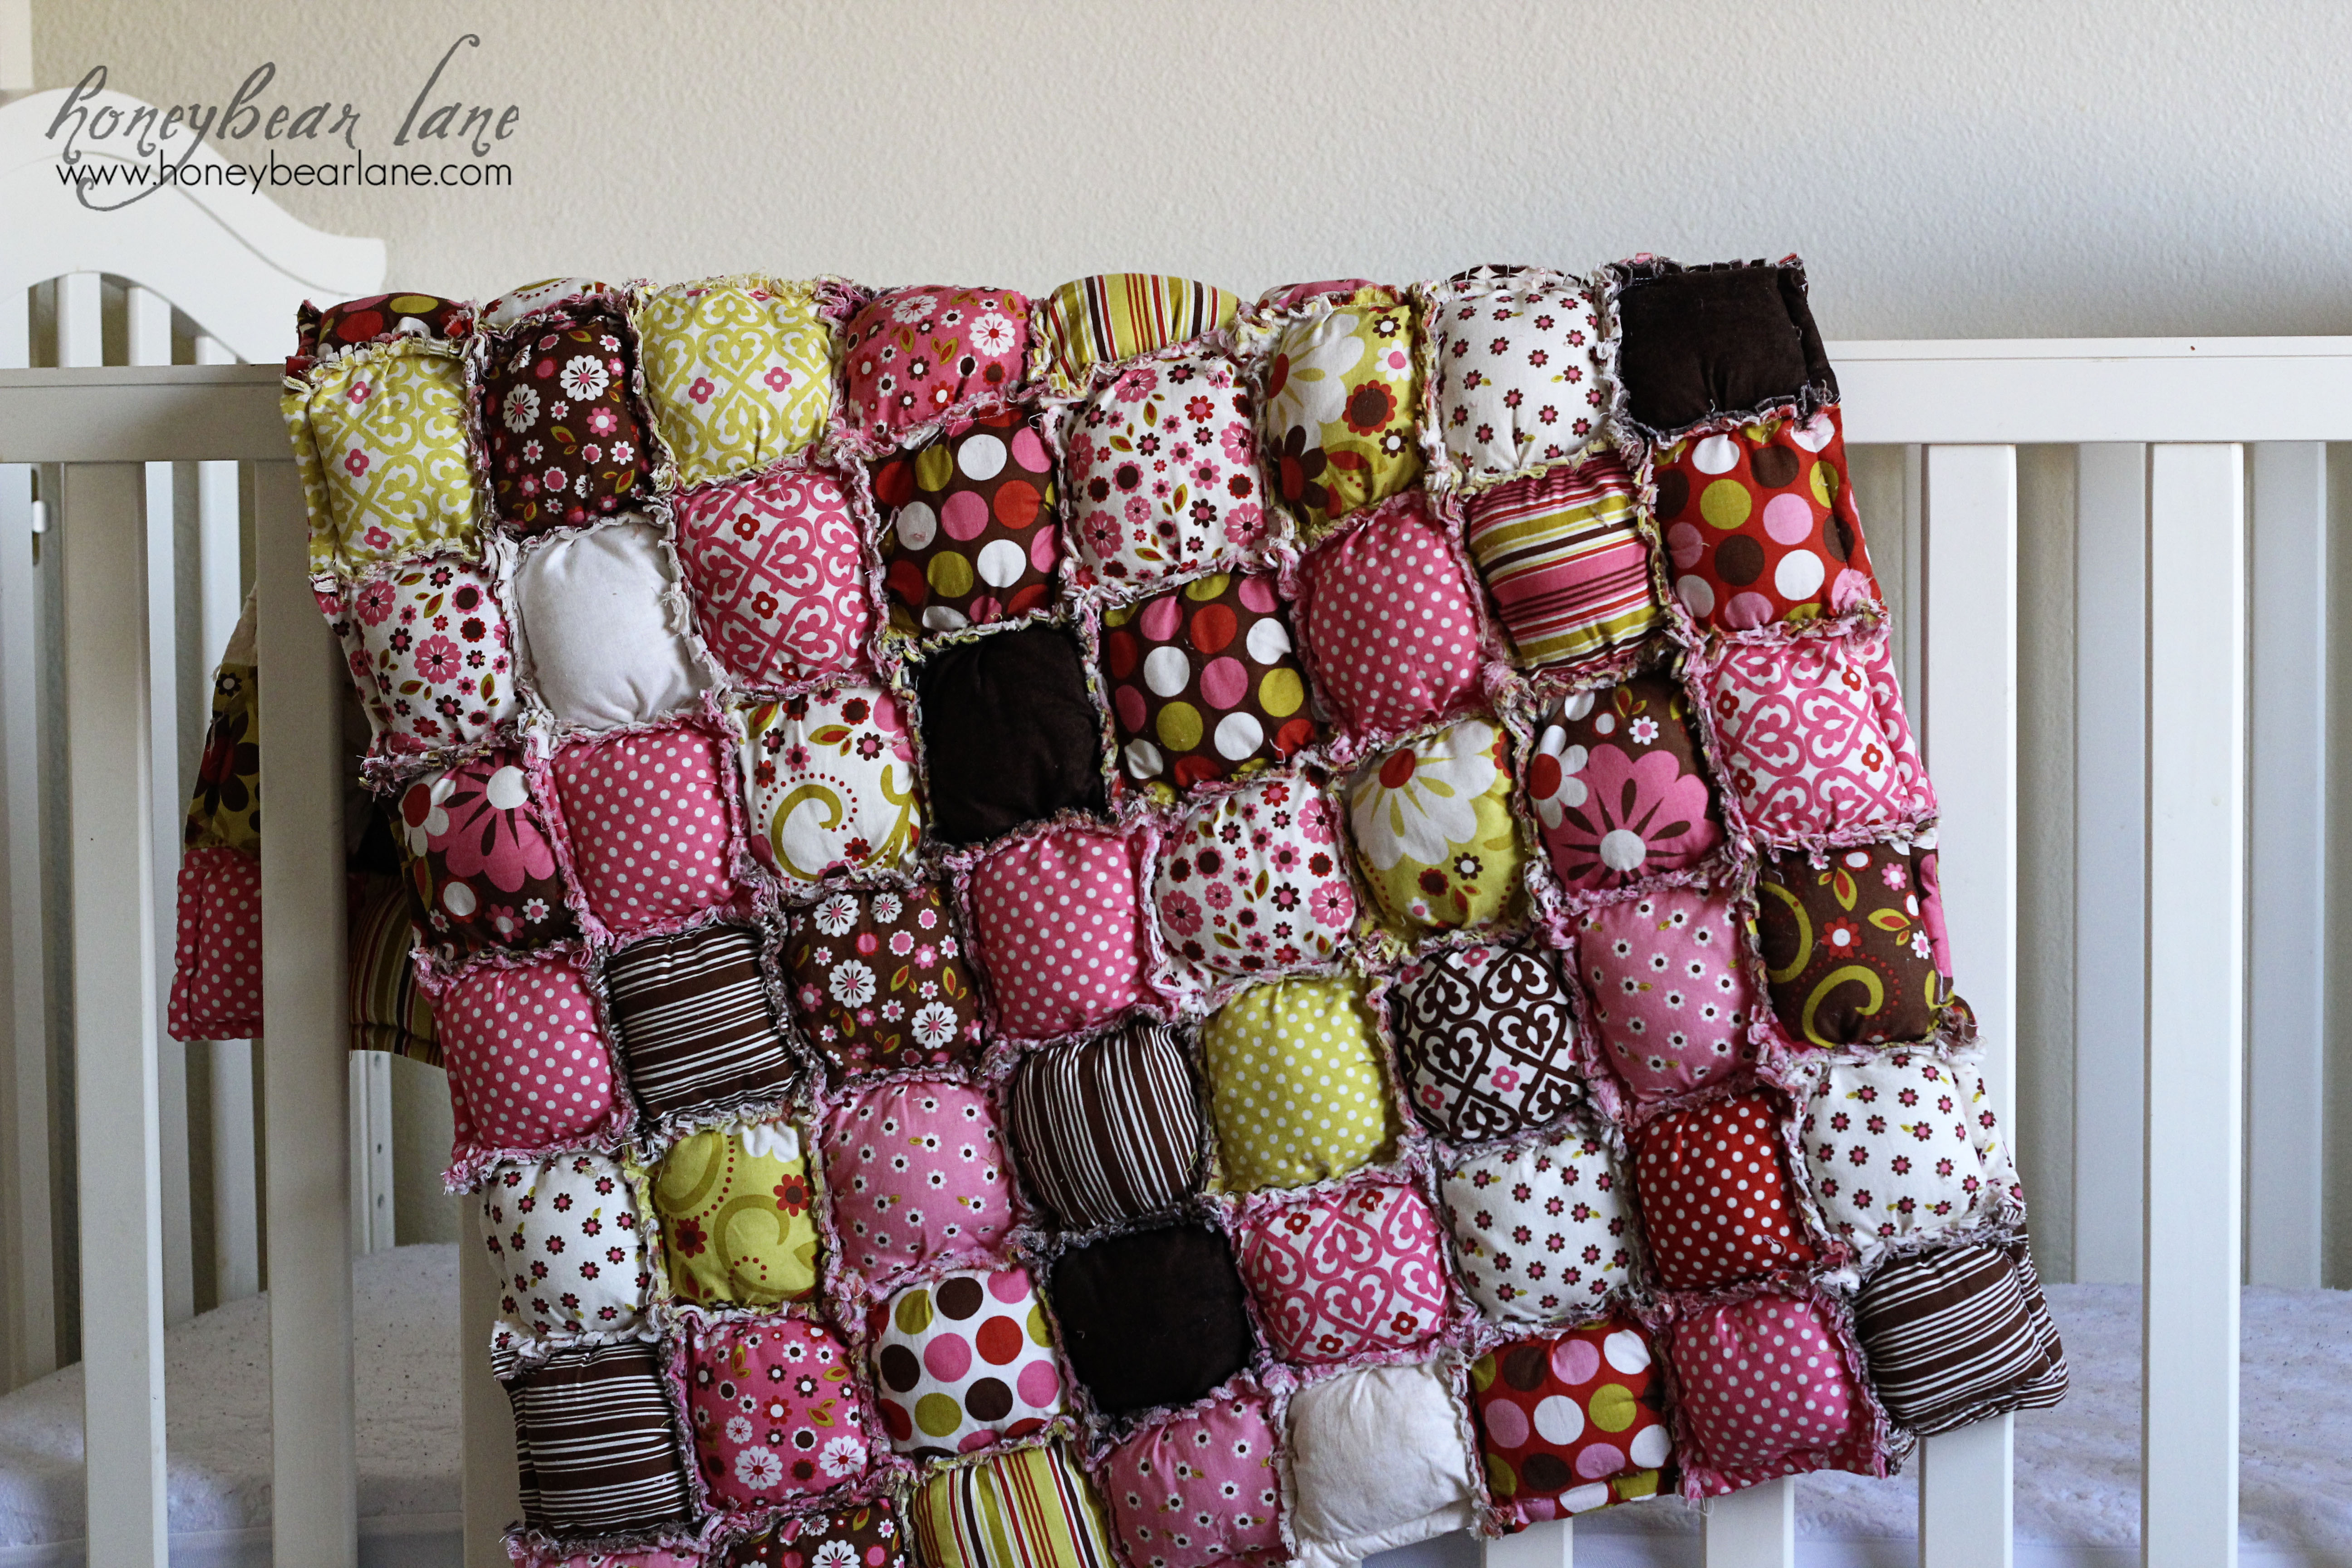 Free Pattern For Baby Puff Quilt : New Puff Quilt Pattern & Giveaway! - HoneyBear Lane